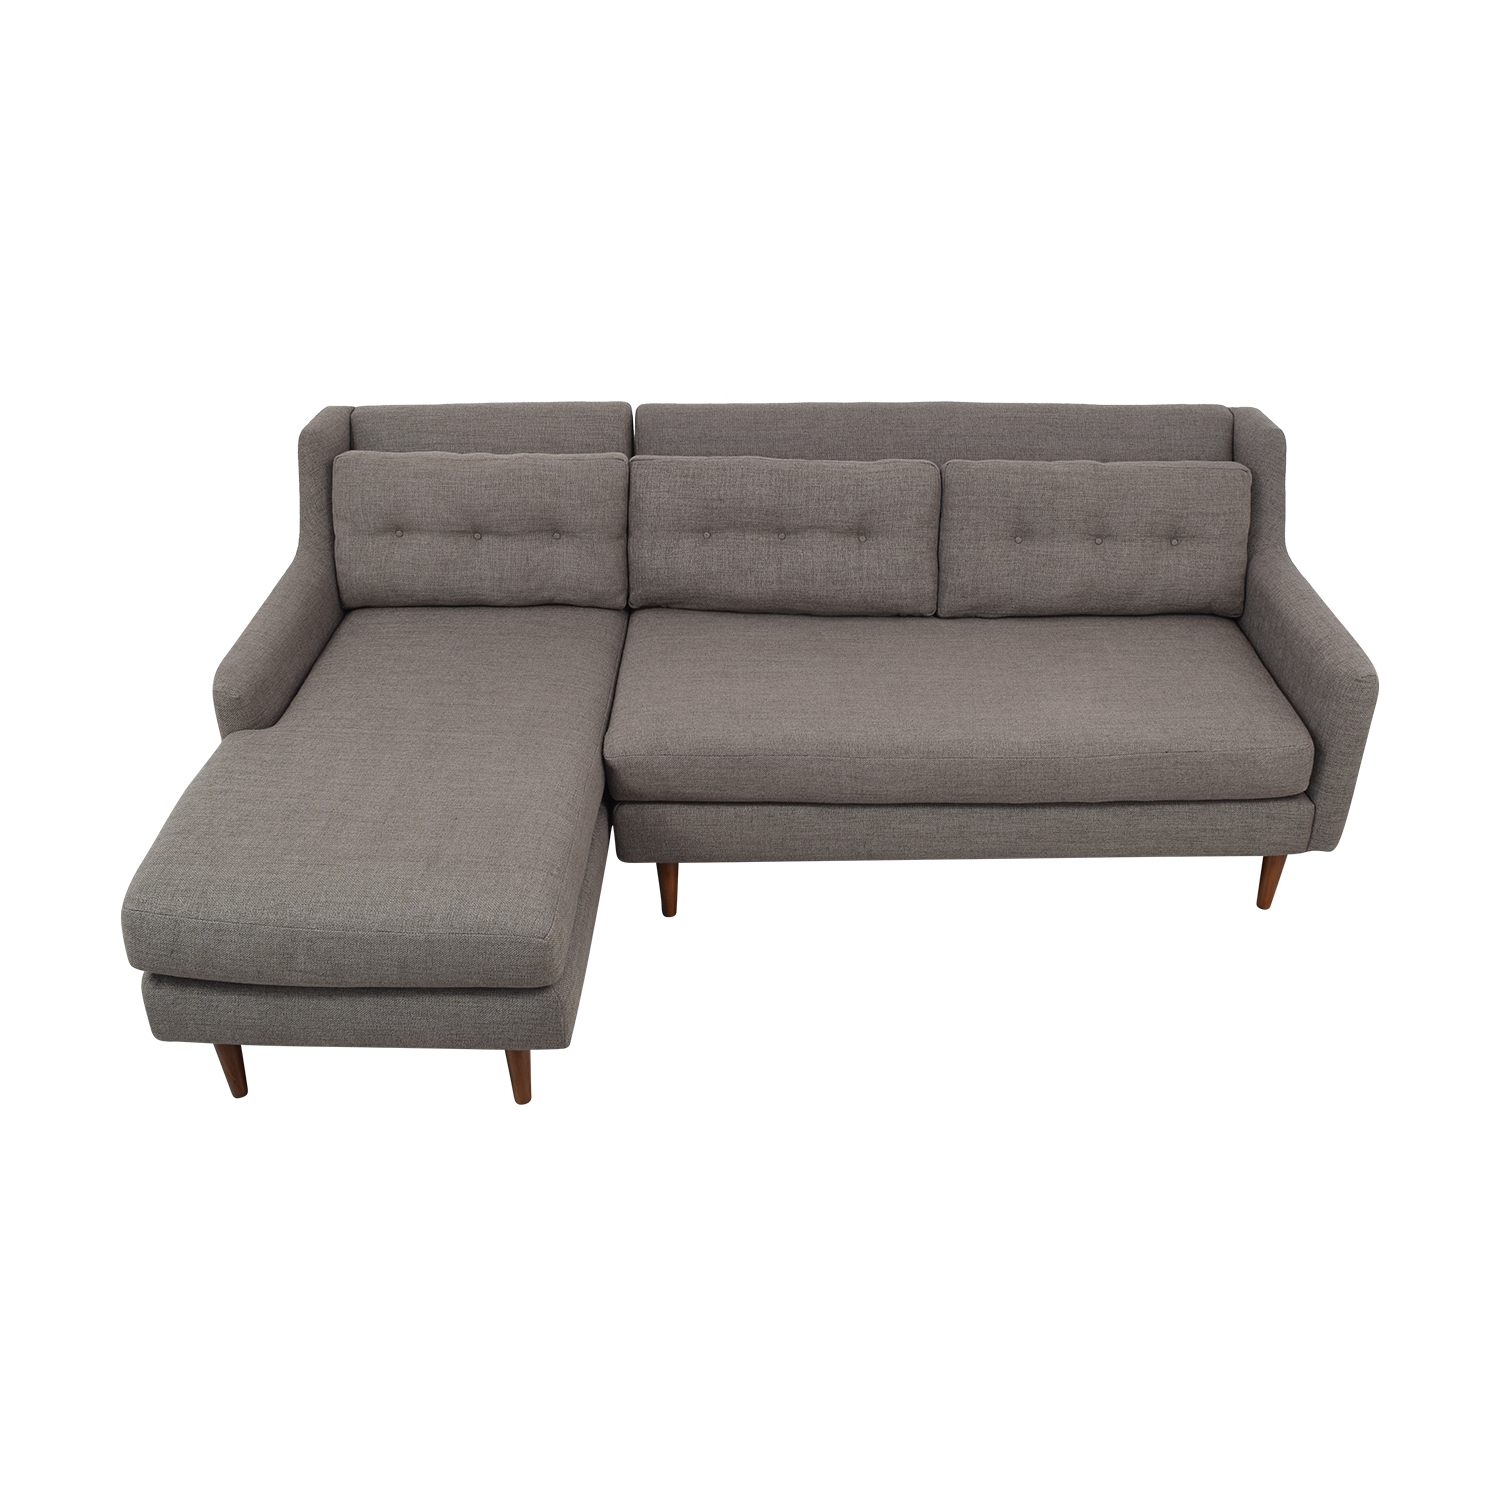 West Elm West Elm Crosby Two Piece Left Chaise Sectional Sofa price